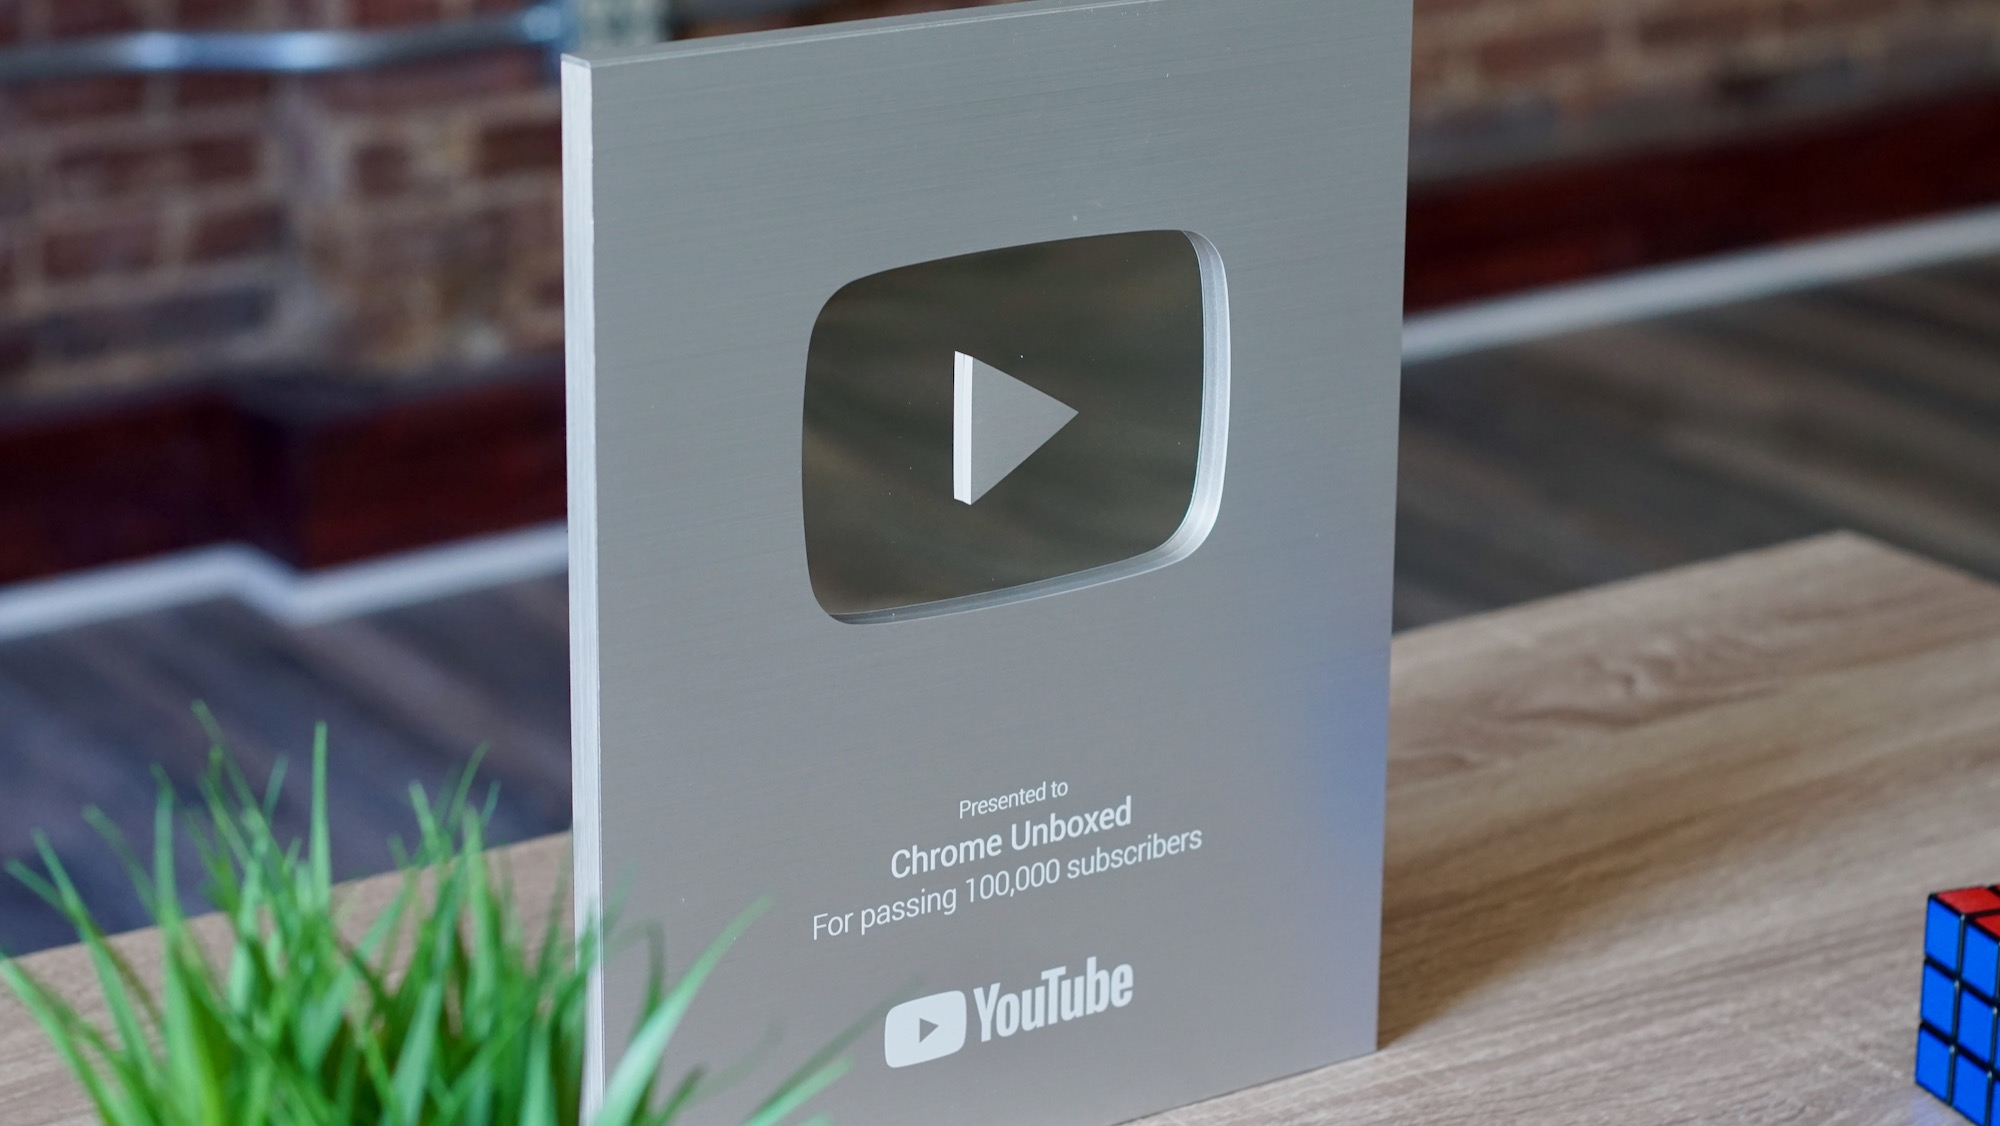 A very unique unboxing video from Chrome Unboxed